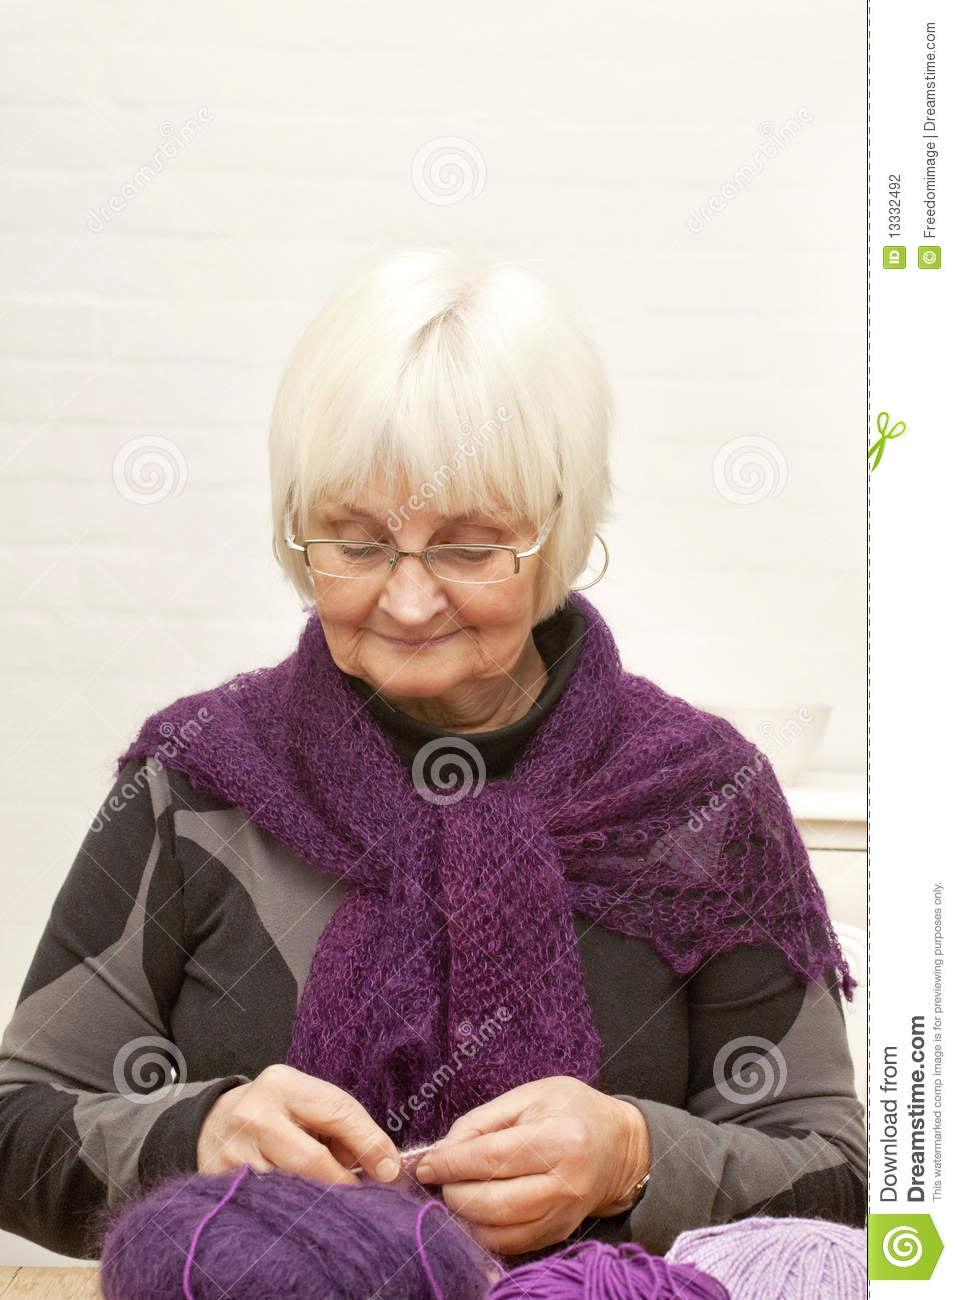 Handcraft Old Woman Knitting Stock Photography Image